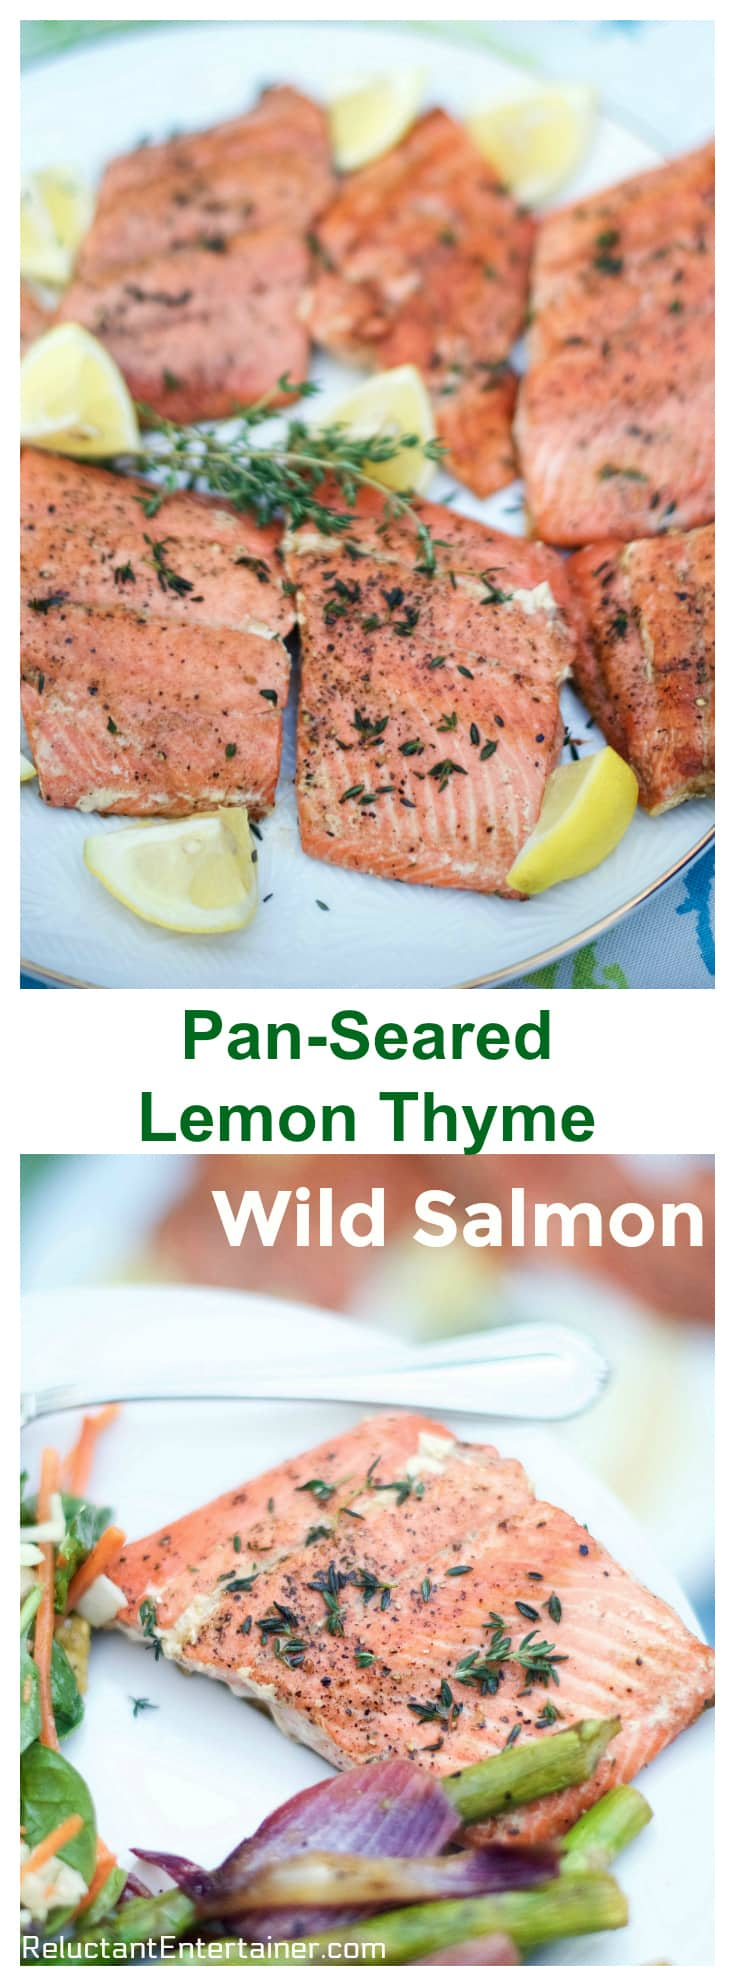 Pan Seared Lemon Thyme Wild Salmon